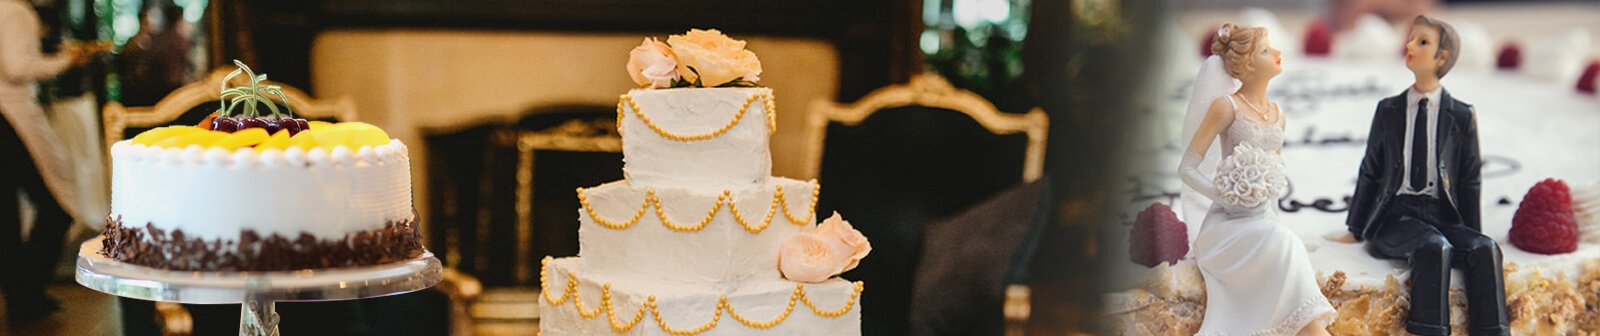 Top Wedding Cake Shops in Goa